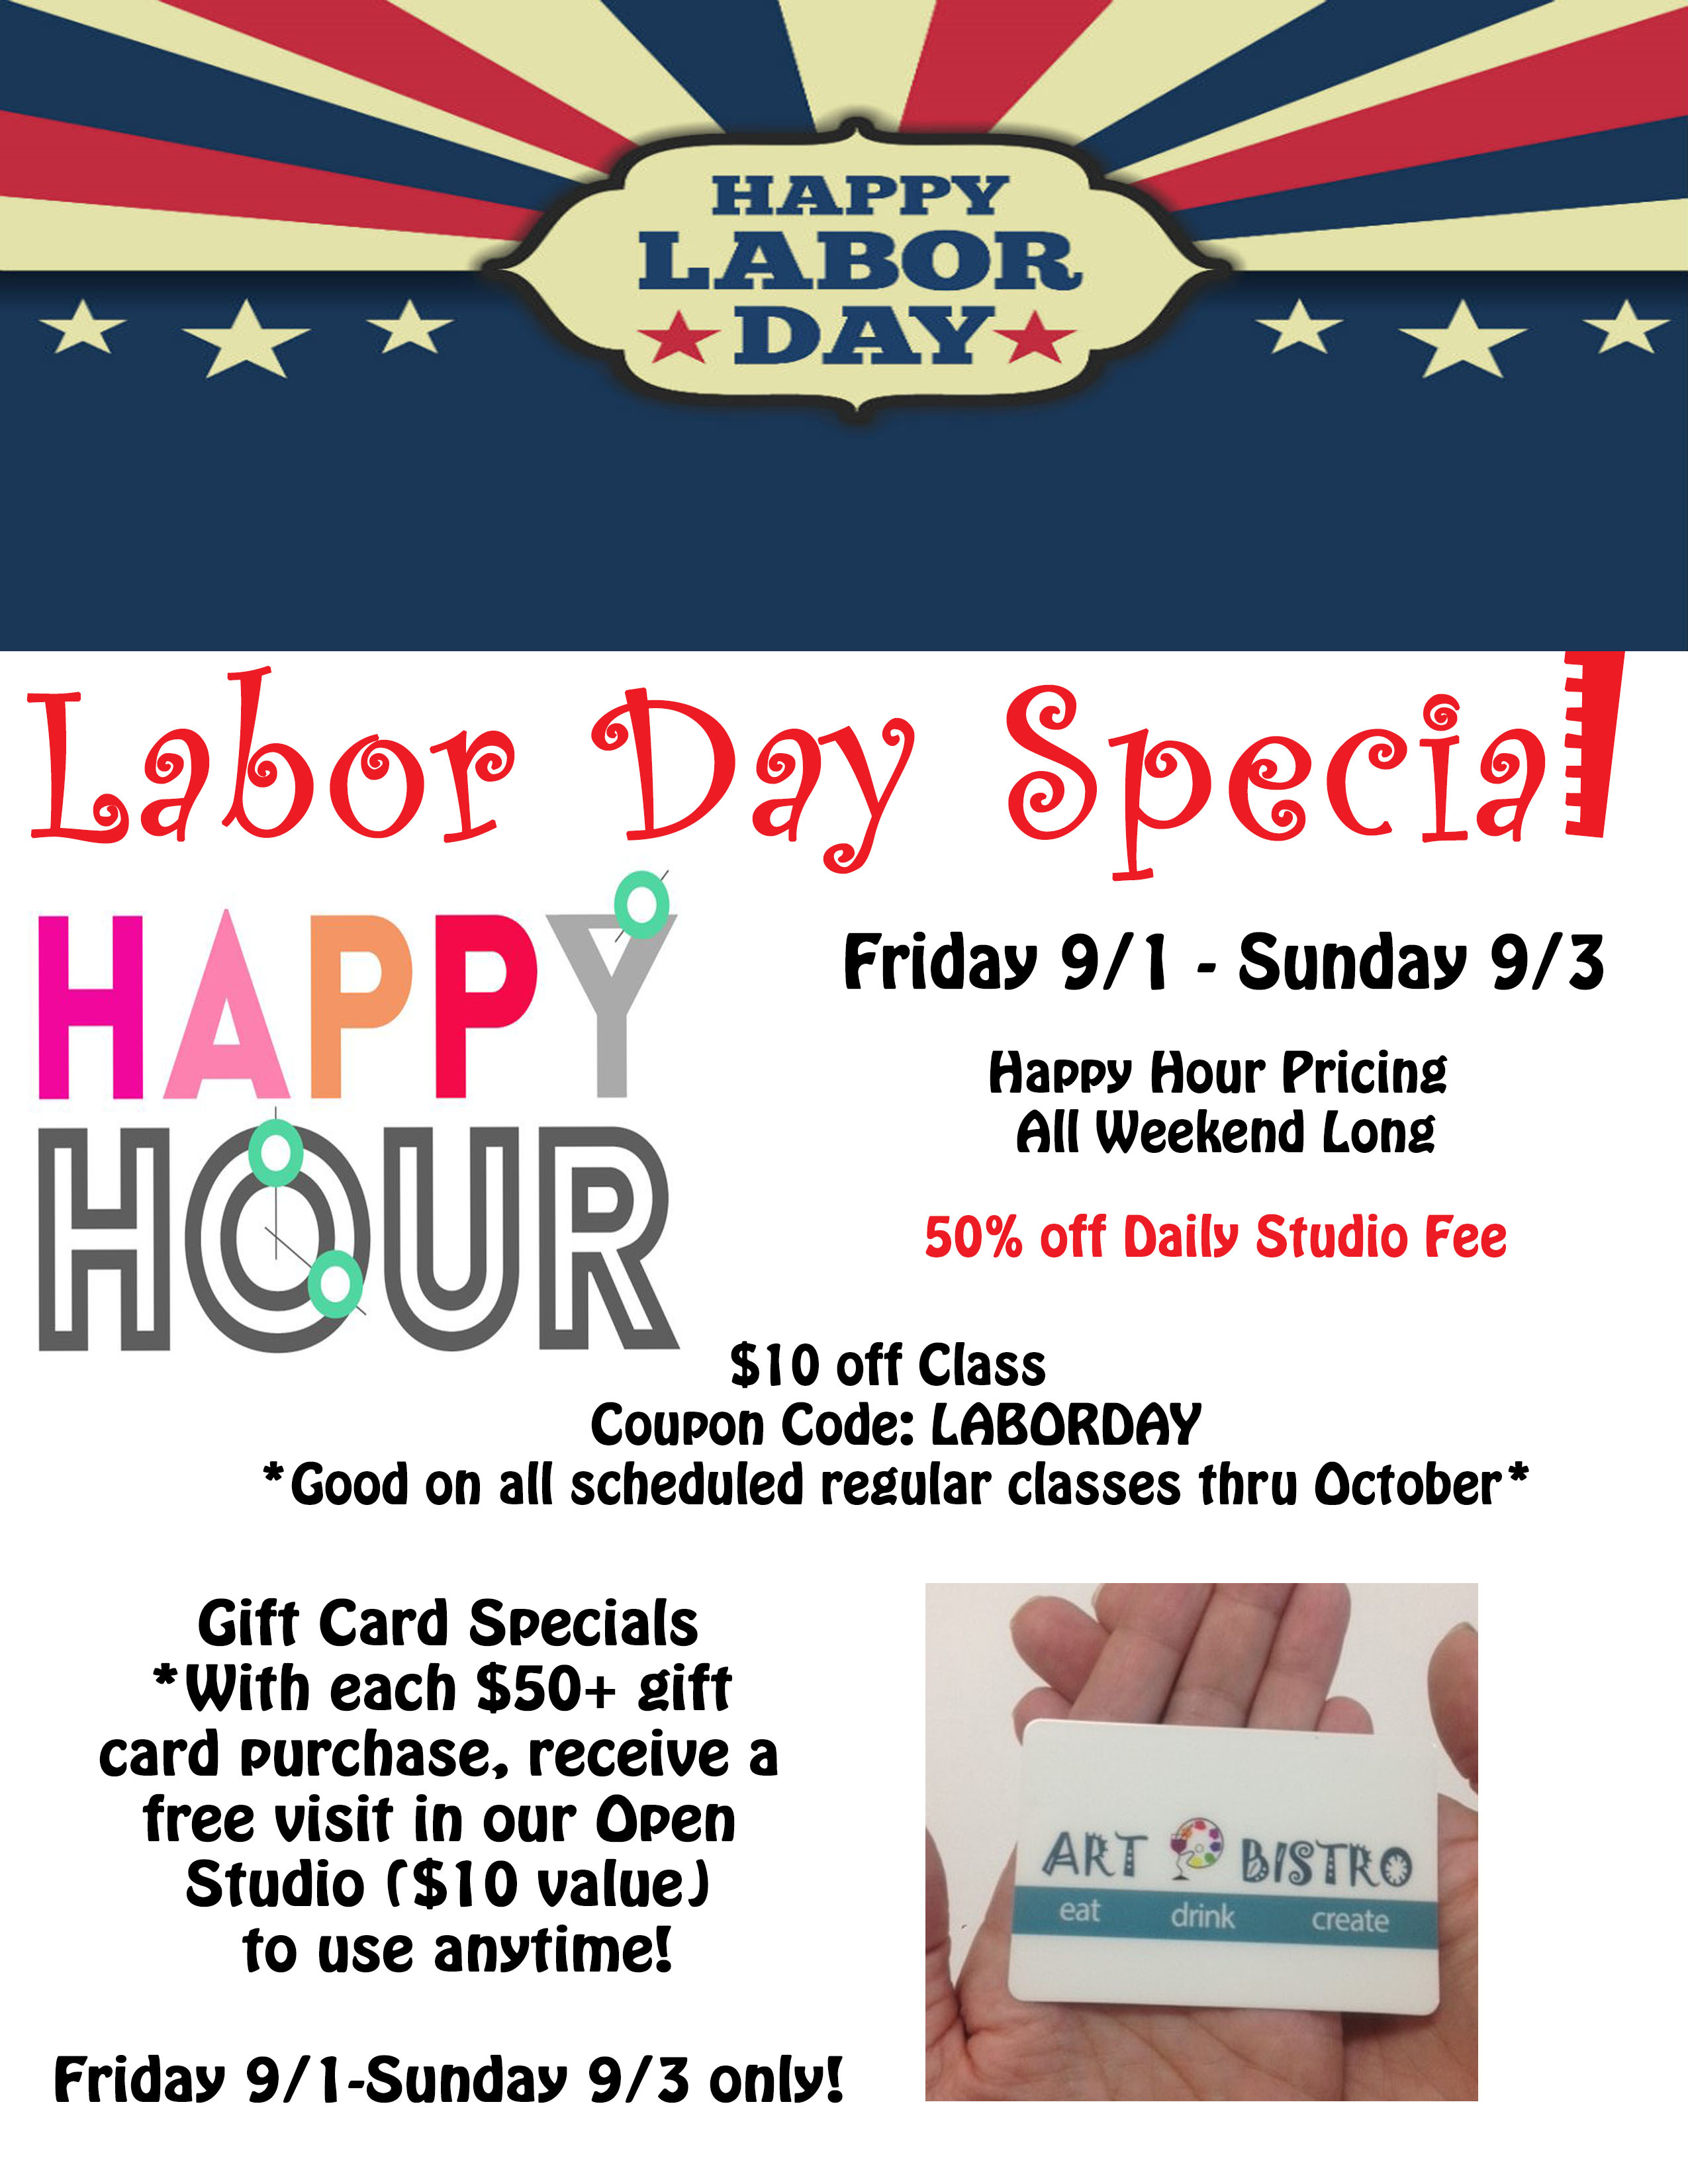 Labor Day Weekend Specials